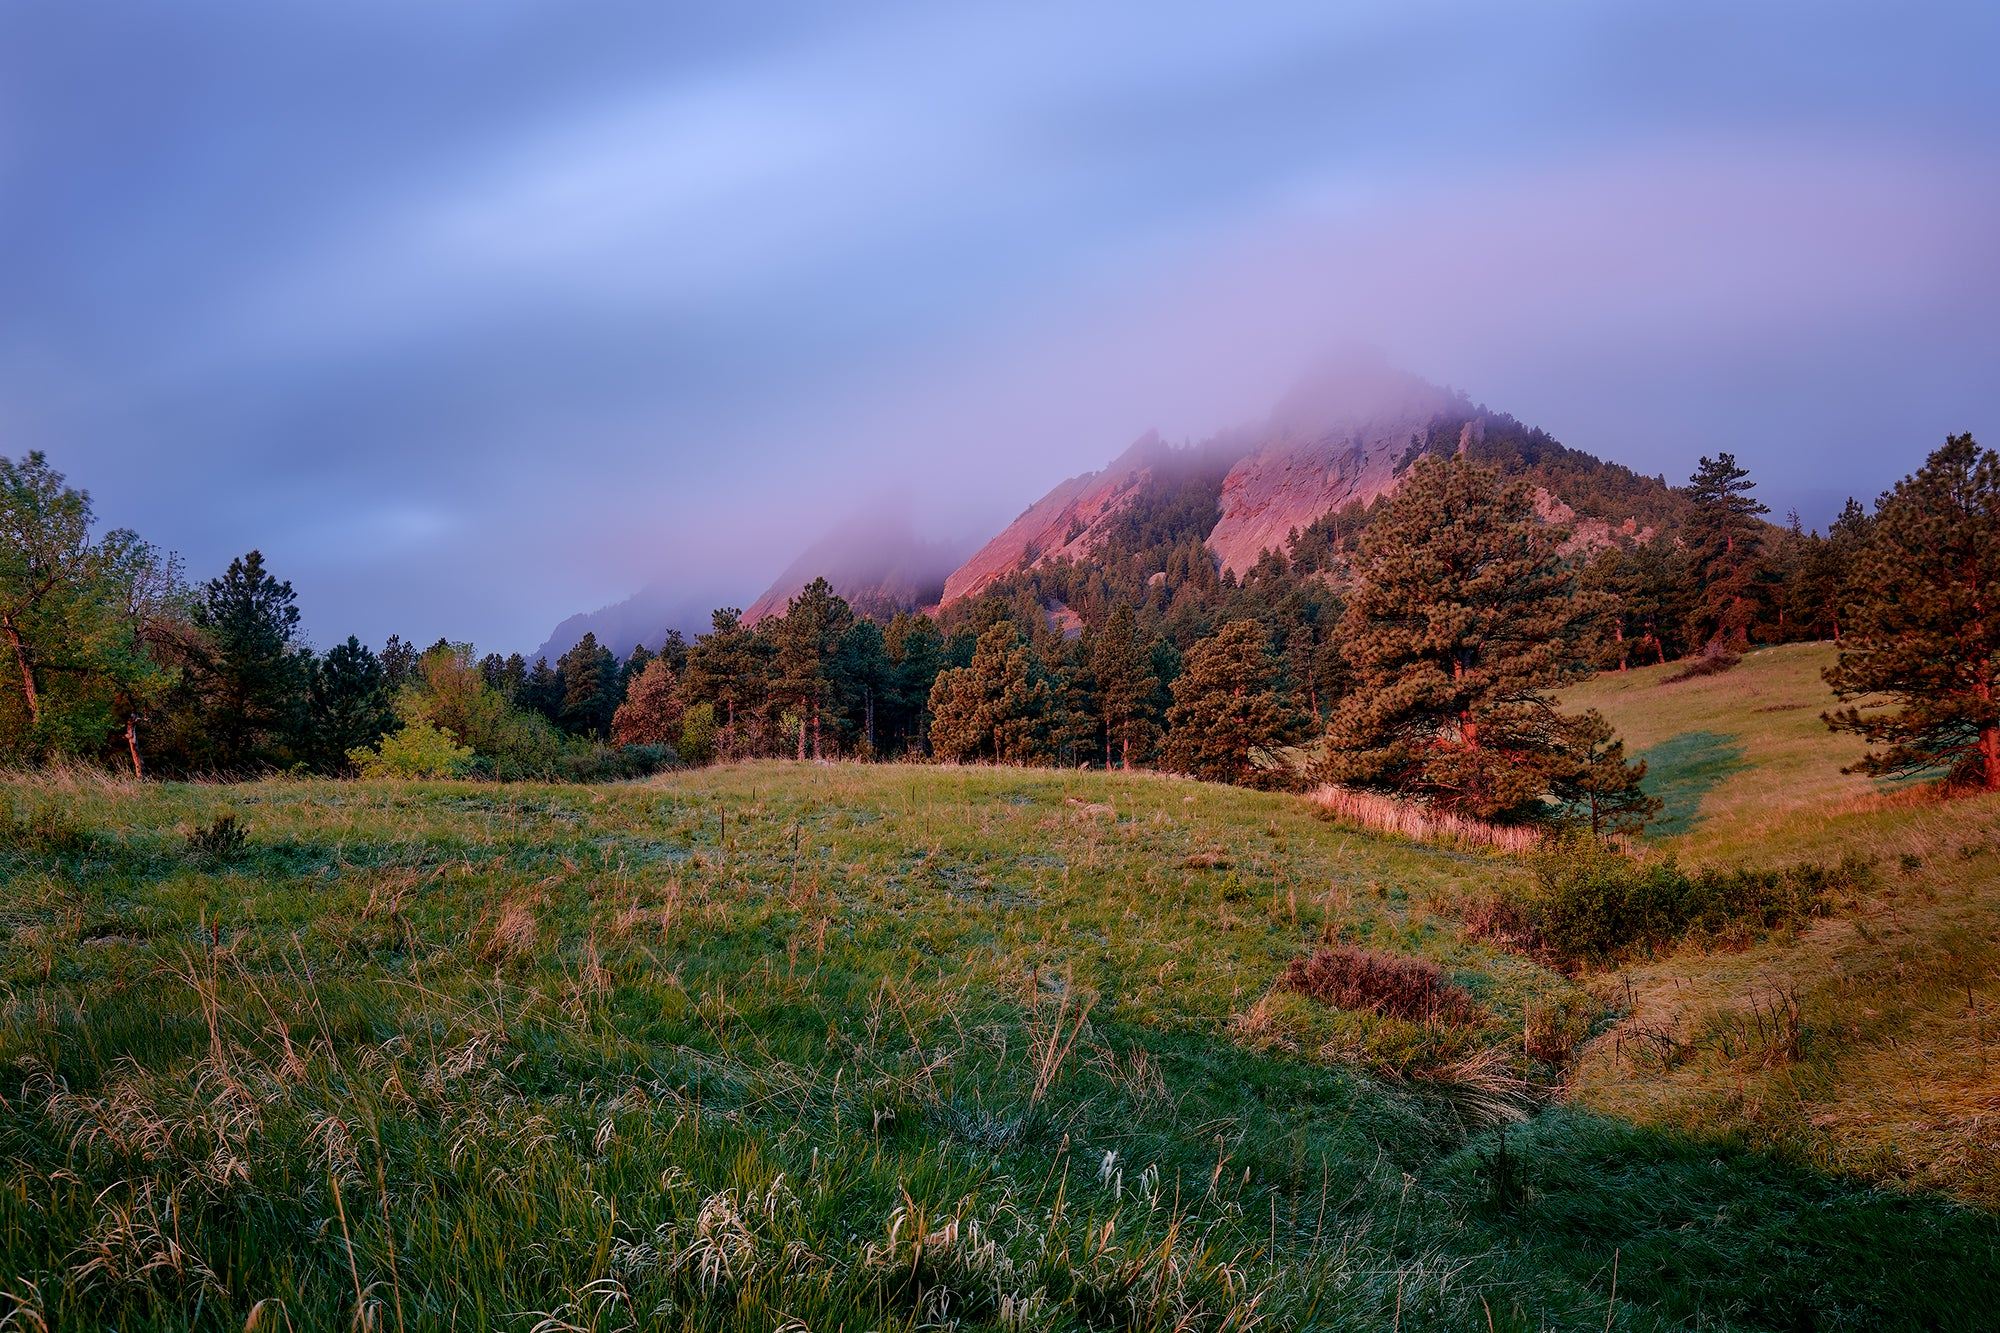 """Shimmer"" by Kent Burkhardsmeier, showing clouds over the Flatirons"